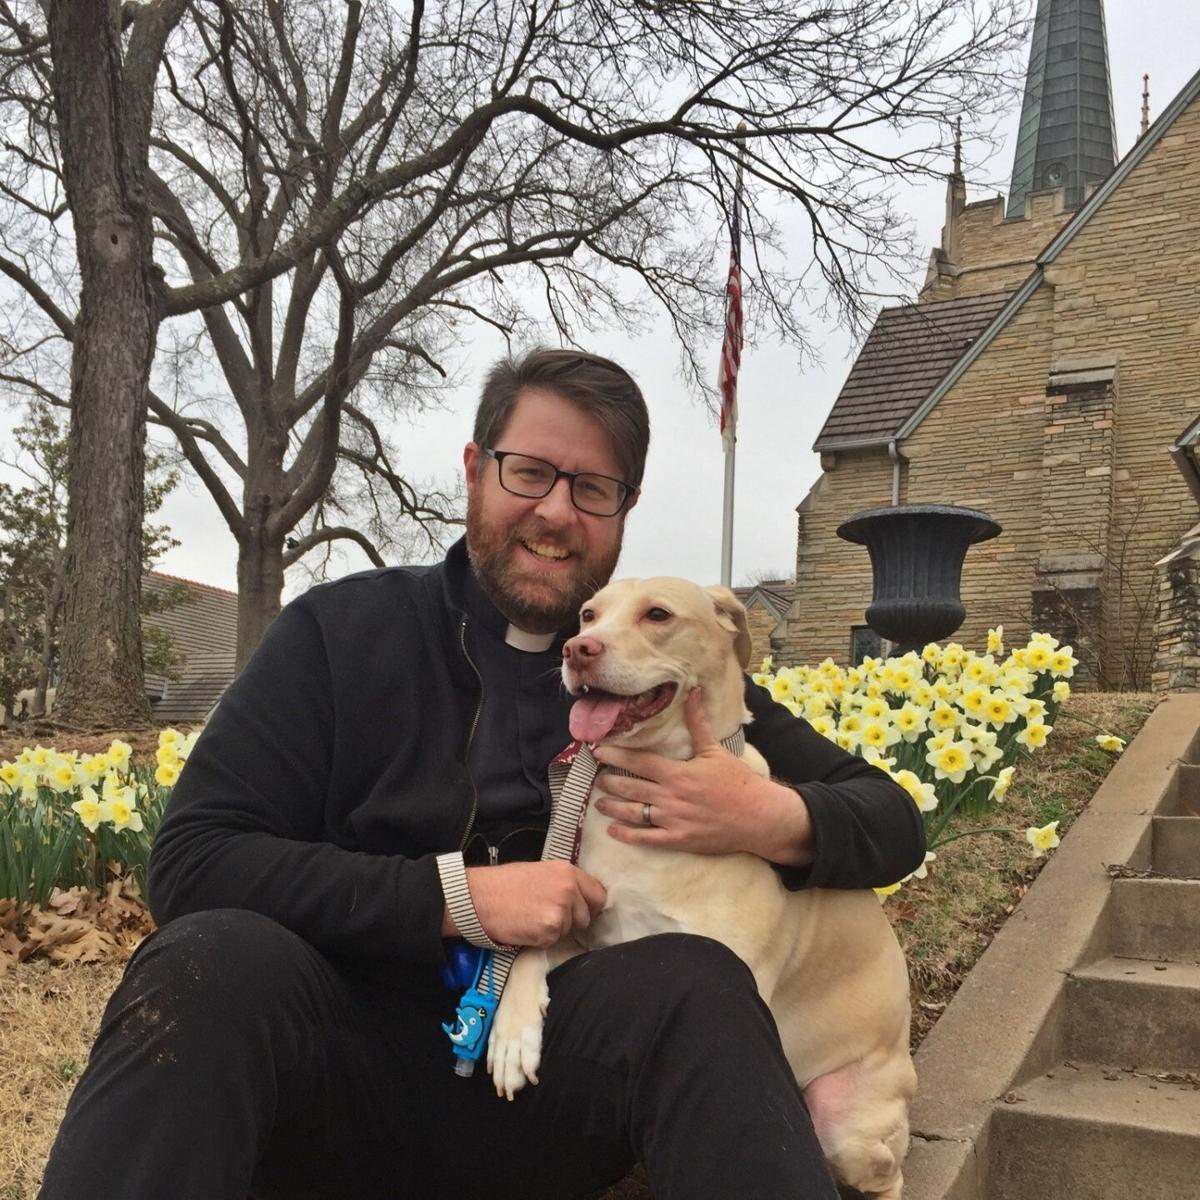 Father David Bumsted and his dog, named Cat.